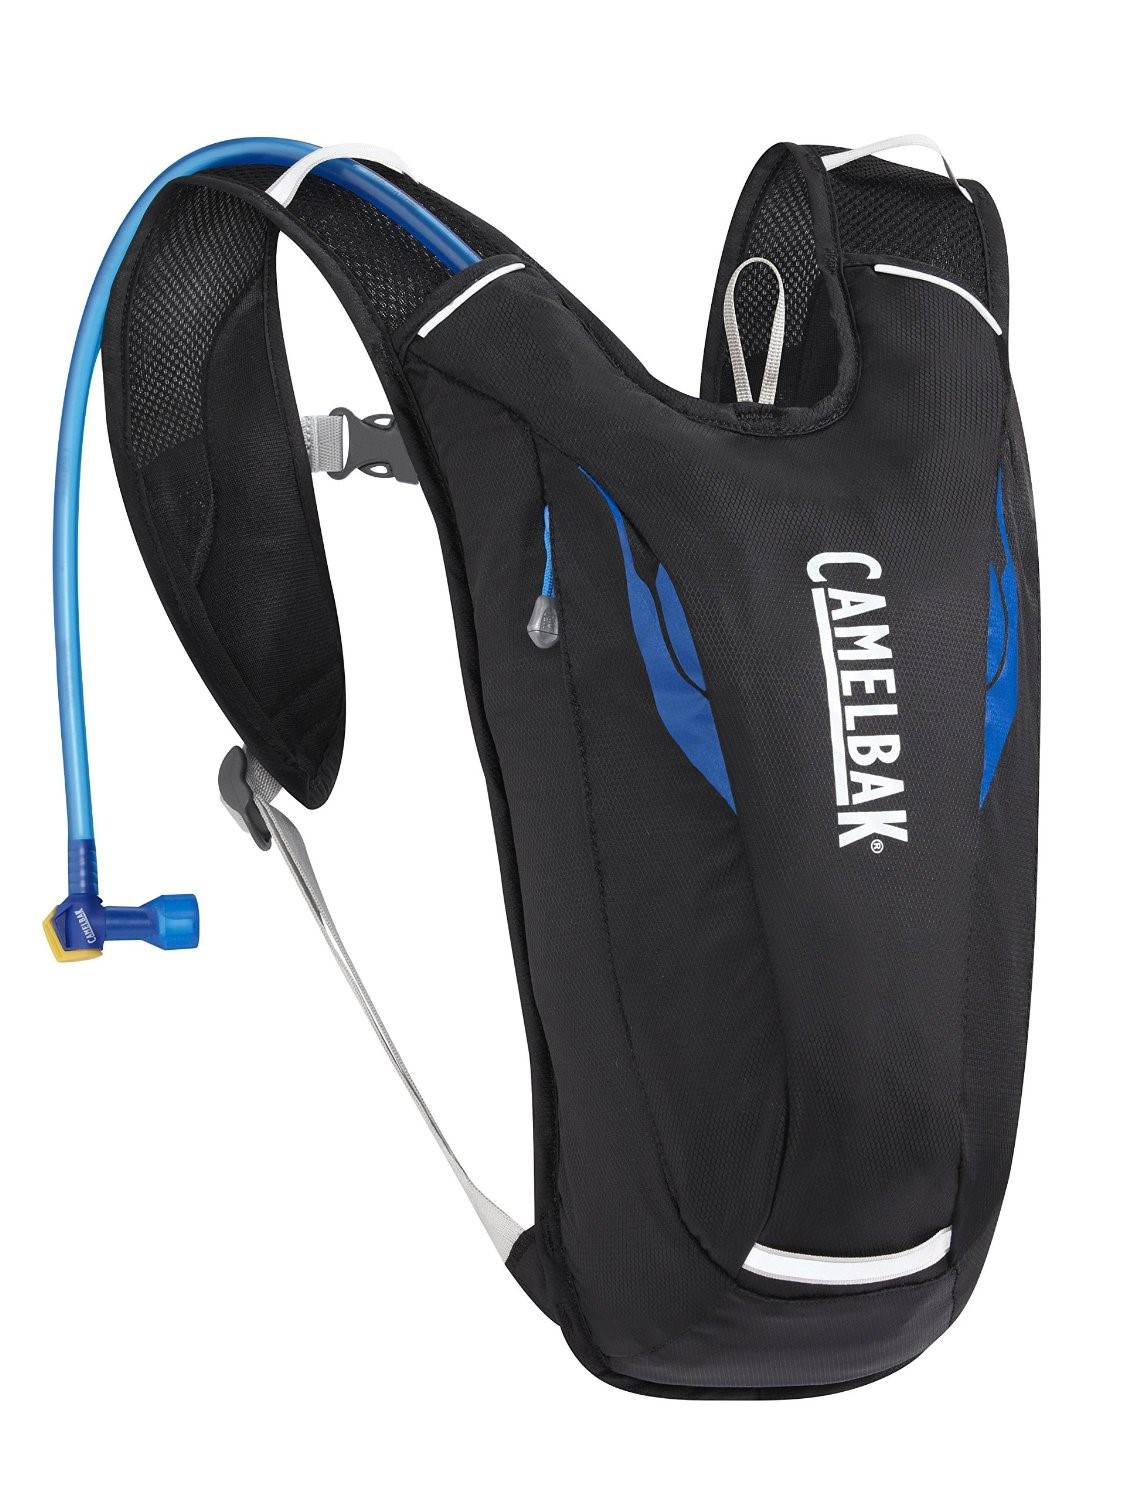 Cycle accessories - Hydration backpack